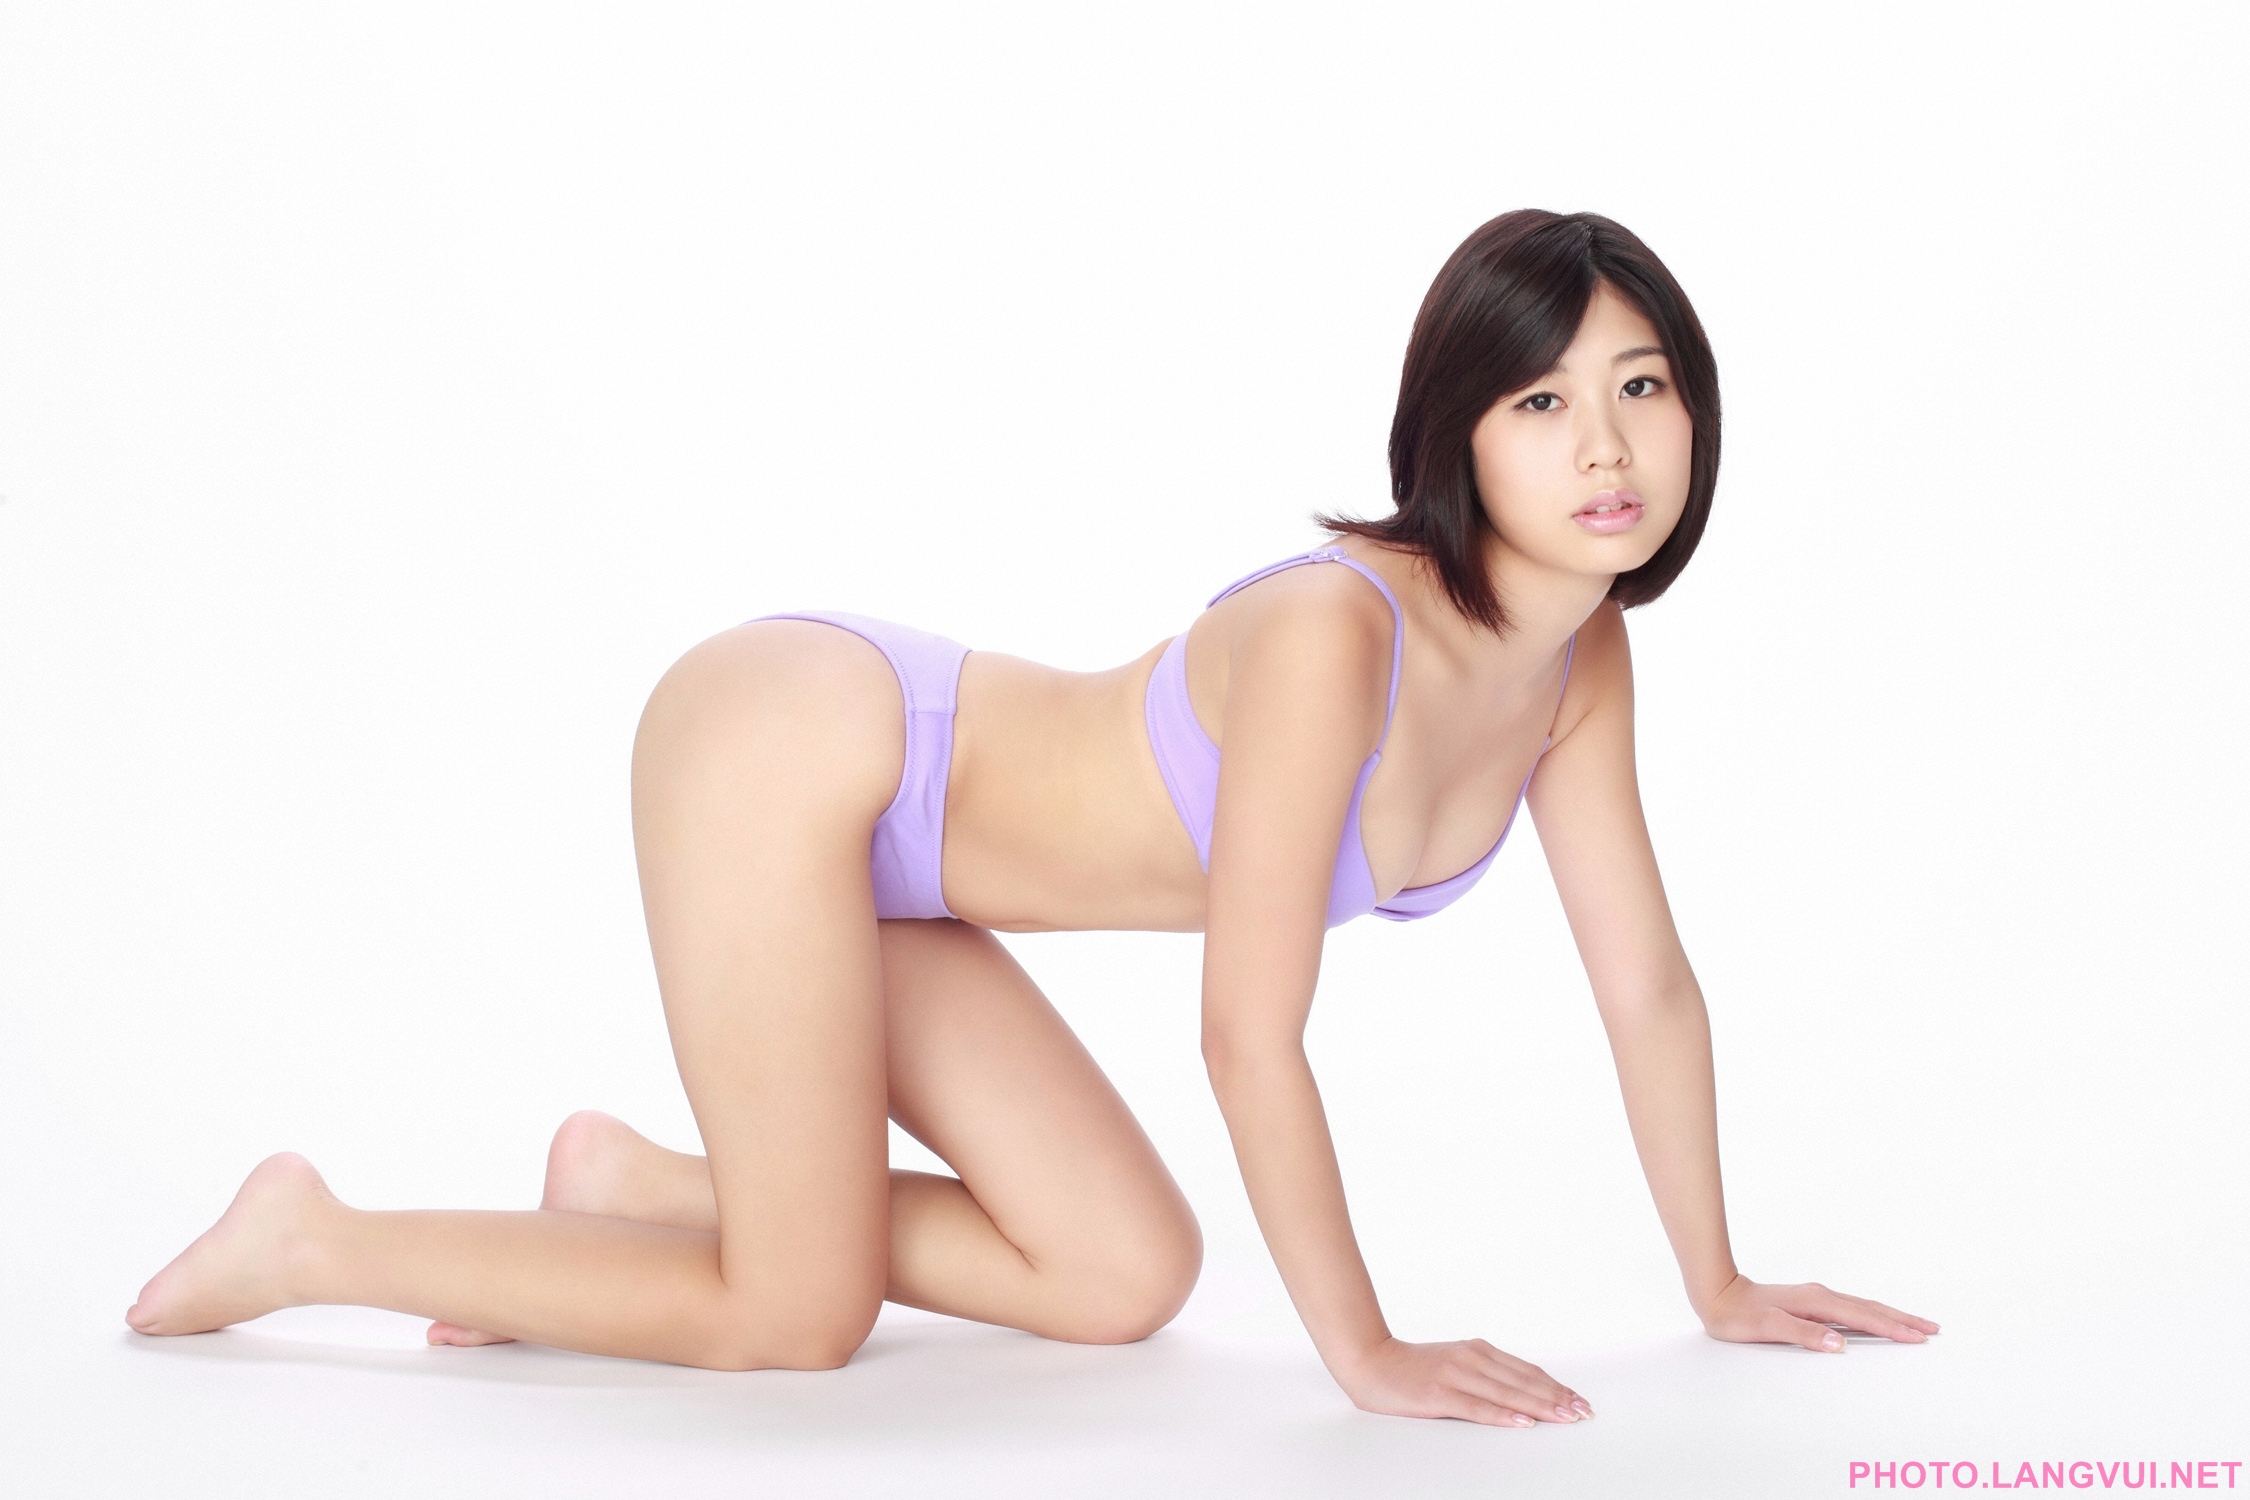 YS Web Vol 391 Kinatsu Kuraoka E 4th week